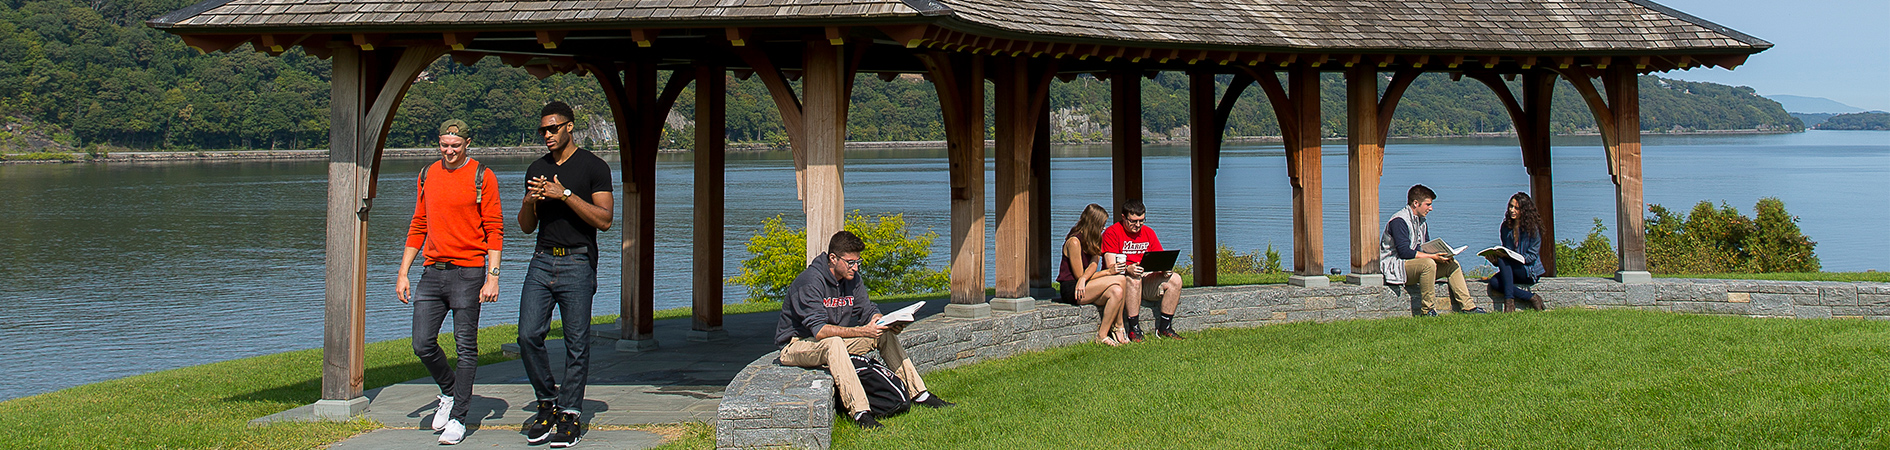 Summer Program - Business | Marist College Summer: Business Institute